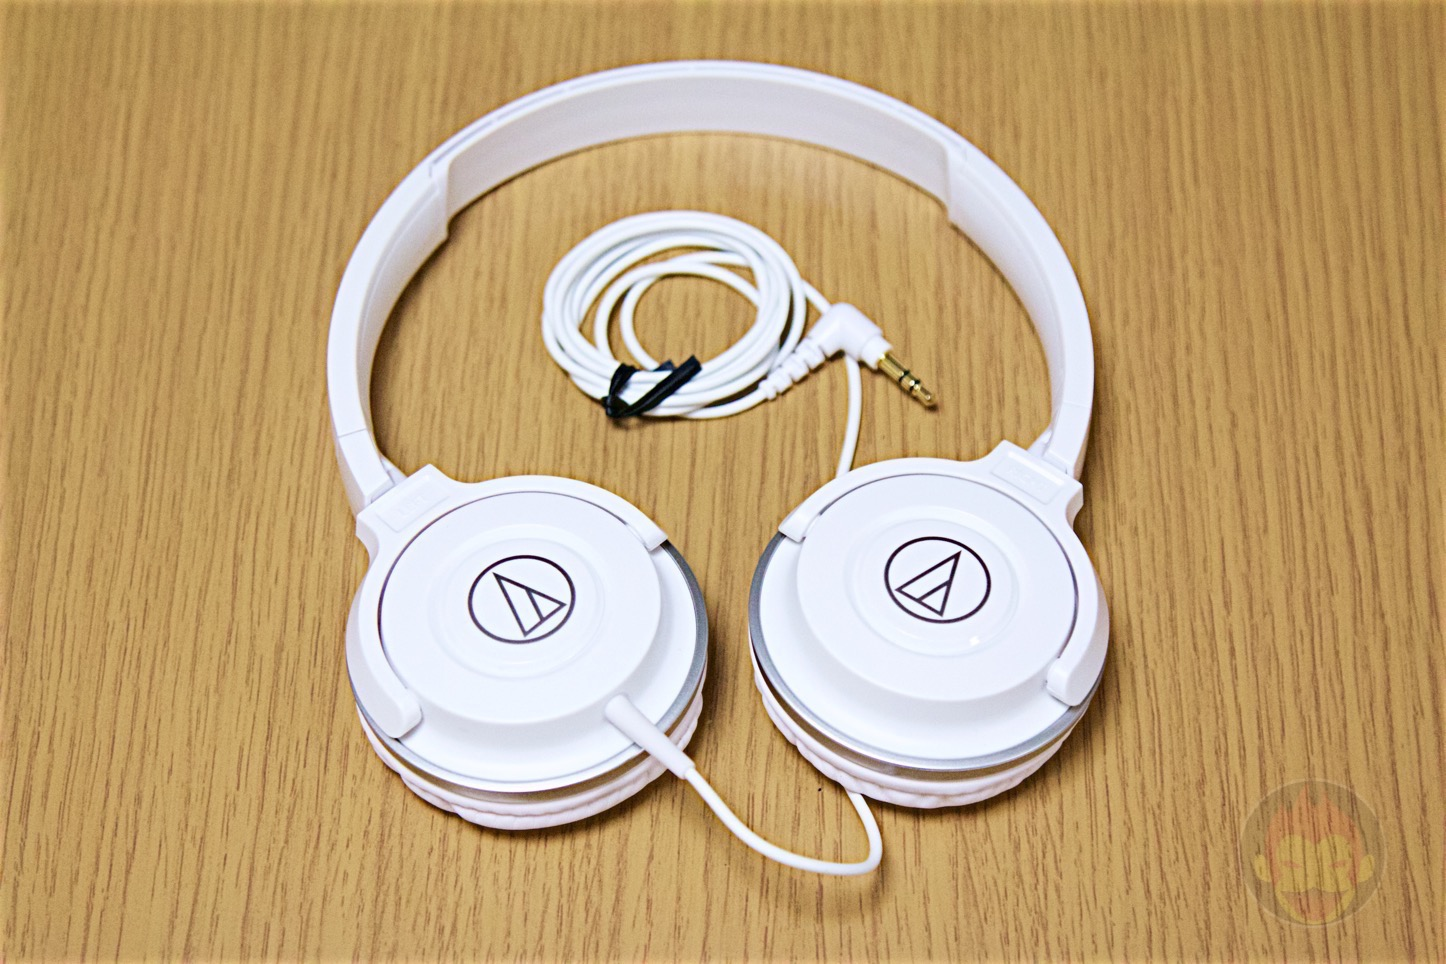 Audio technica STREET MONITORING ATH-S100